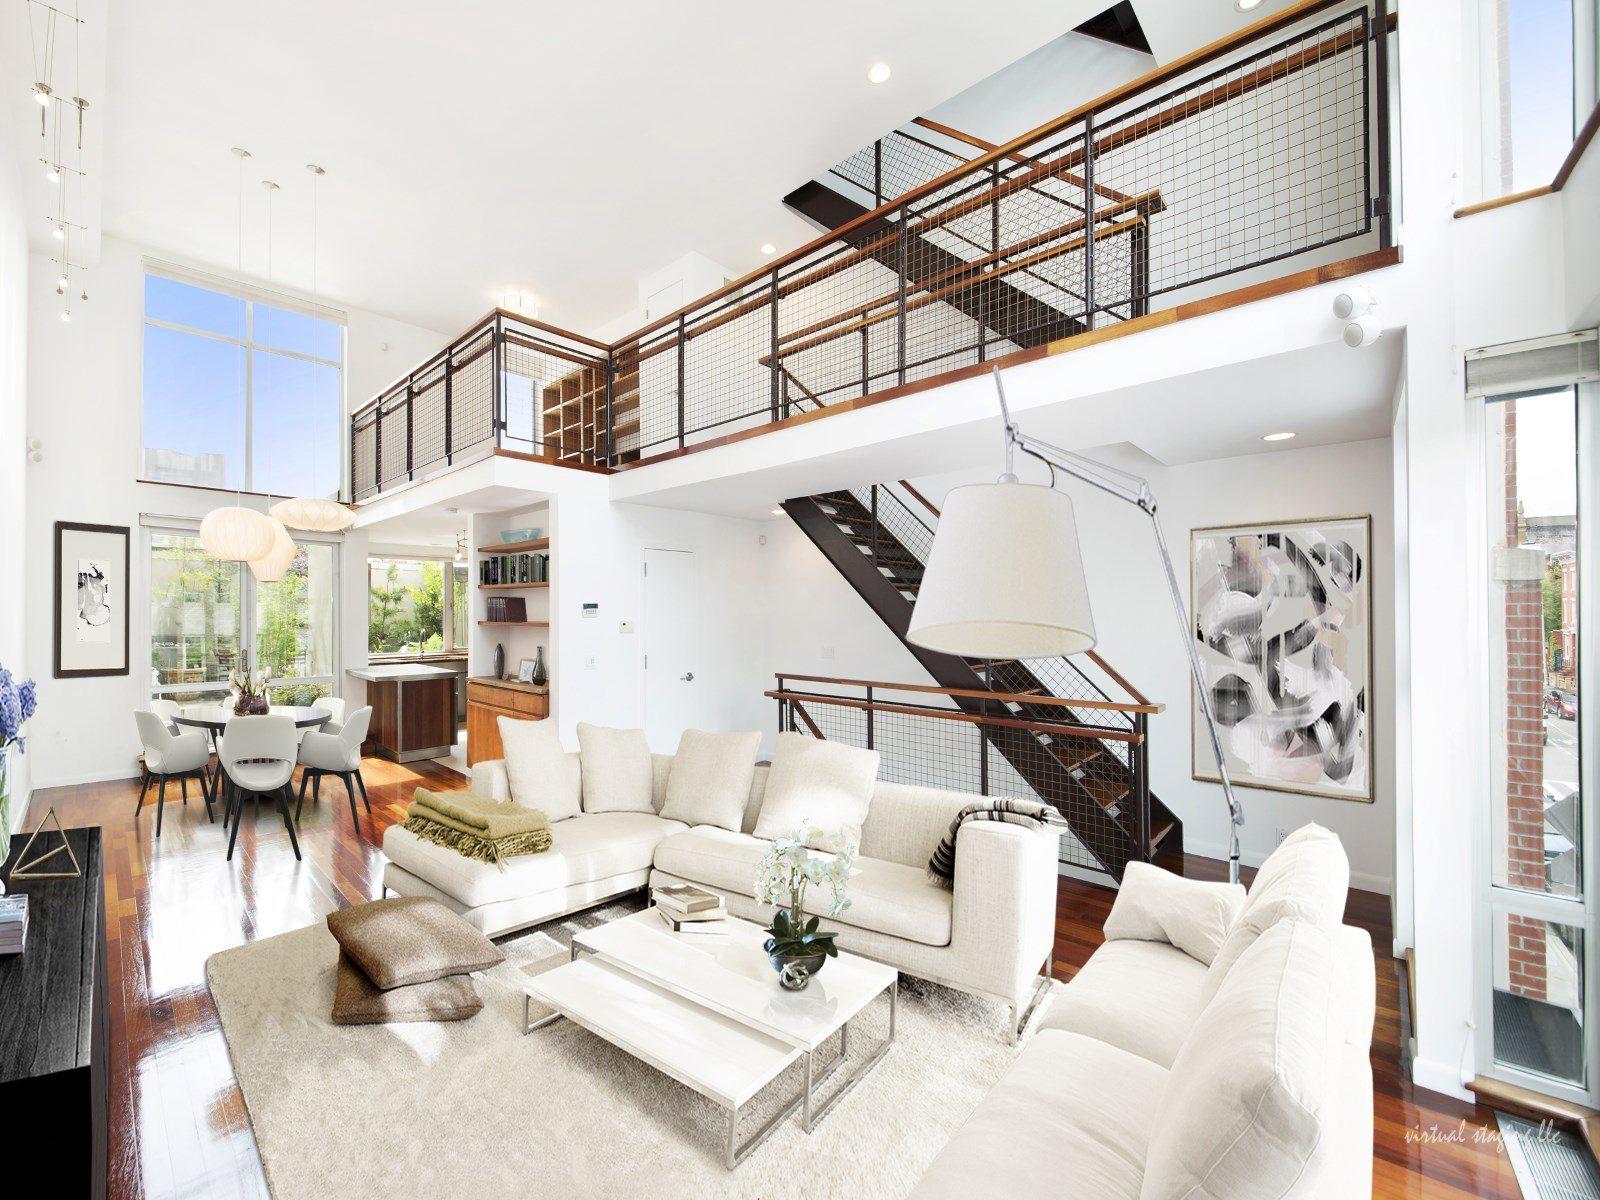 This modern $4.5M townhouse by the Williamsburg waterfront has an ...